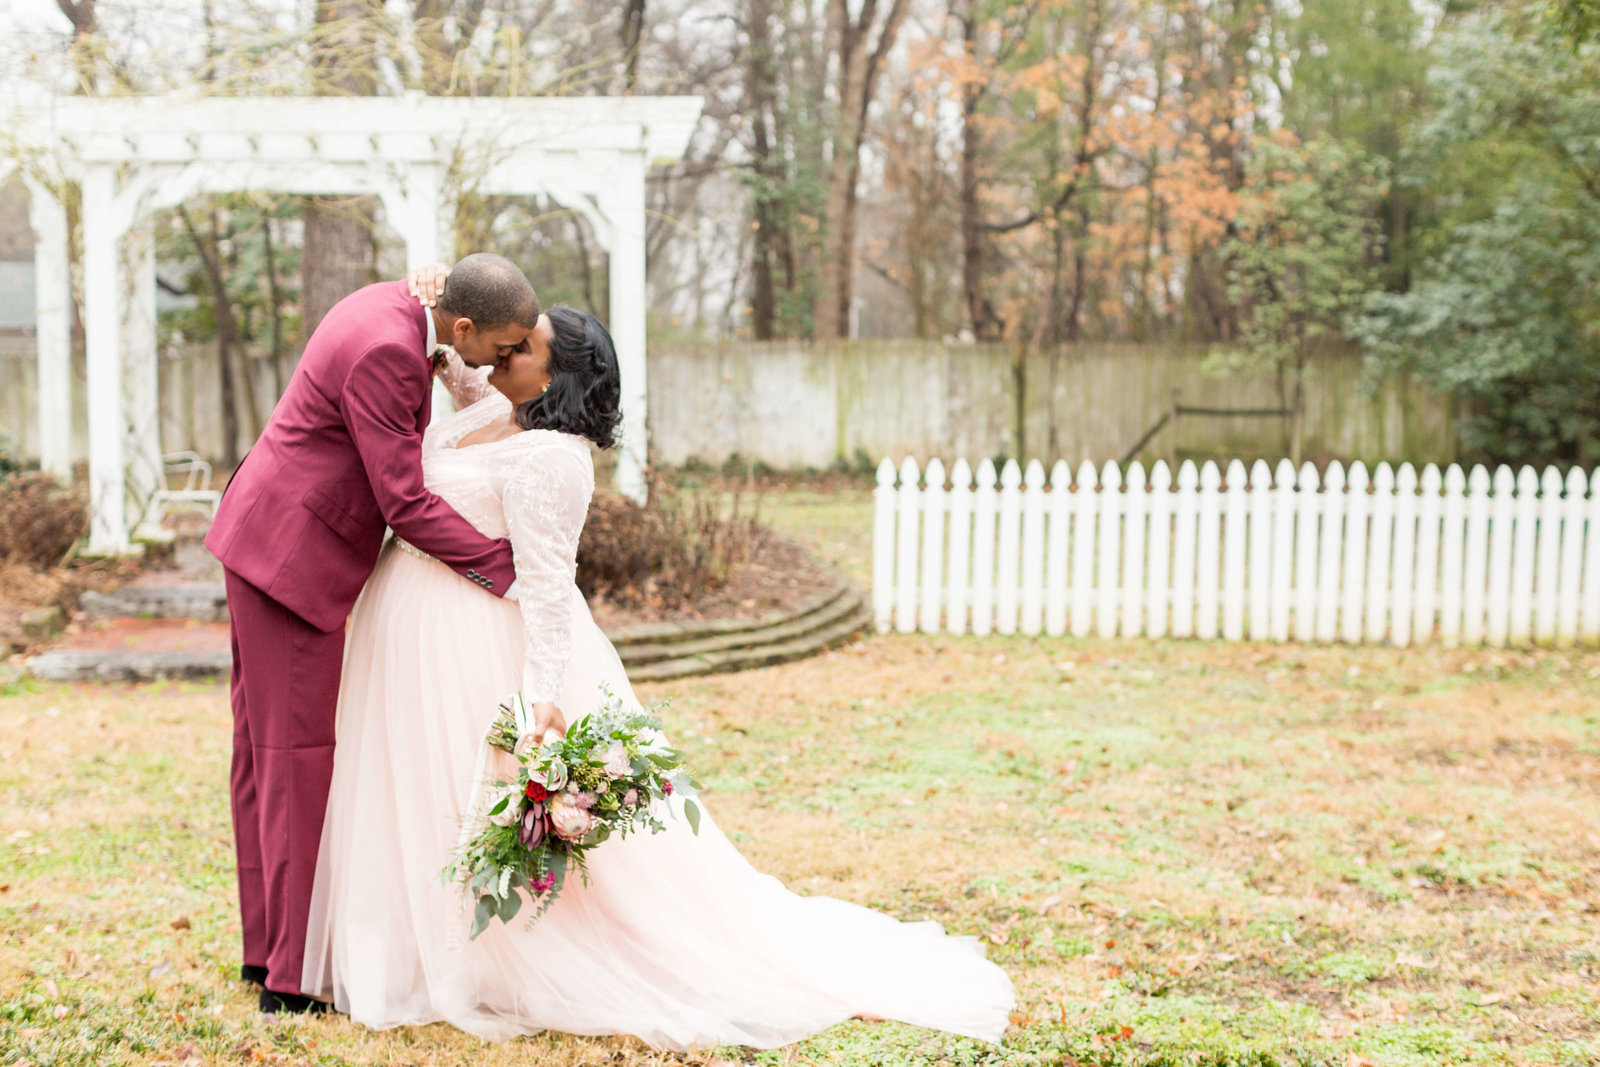 Amber-Carlos-Vow-Renewal_SC-Wedding-Photographer_2018-74